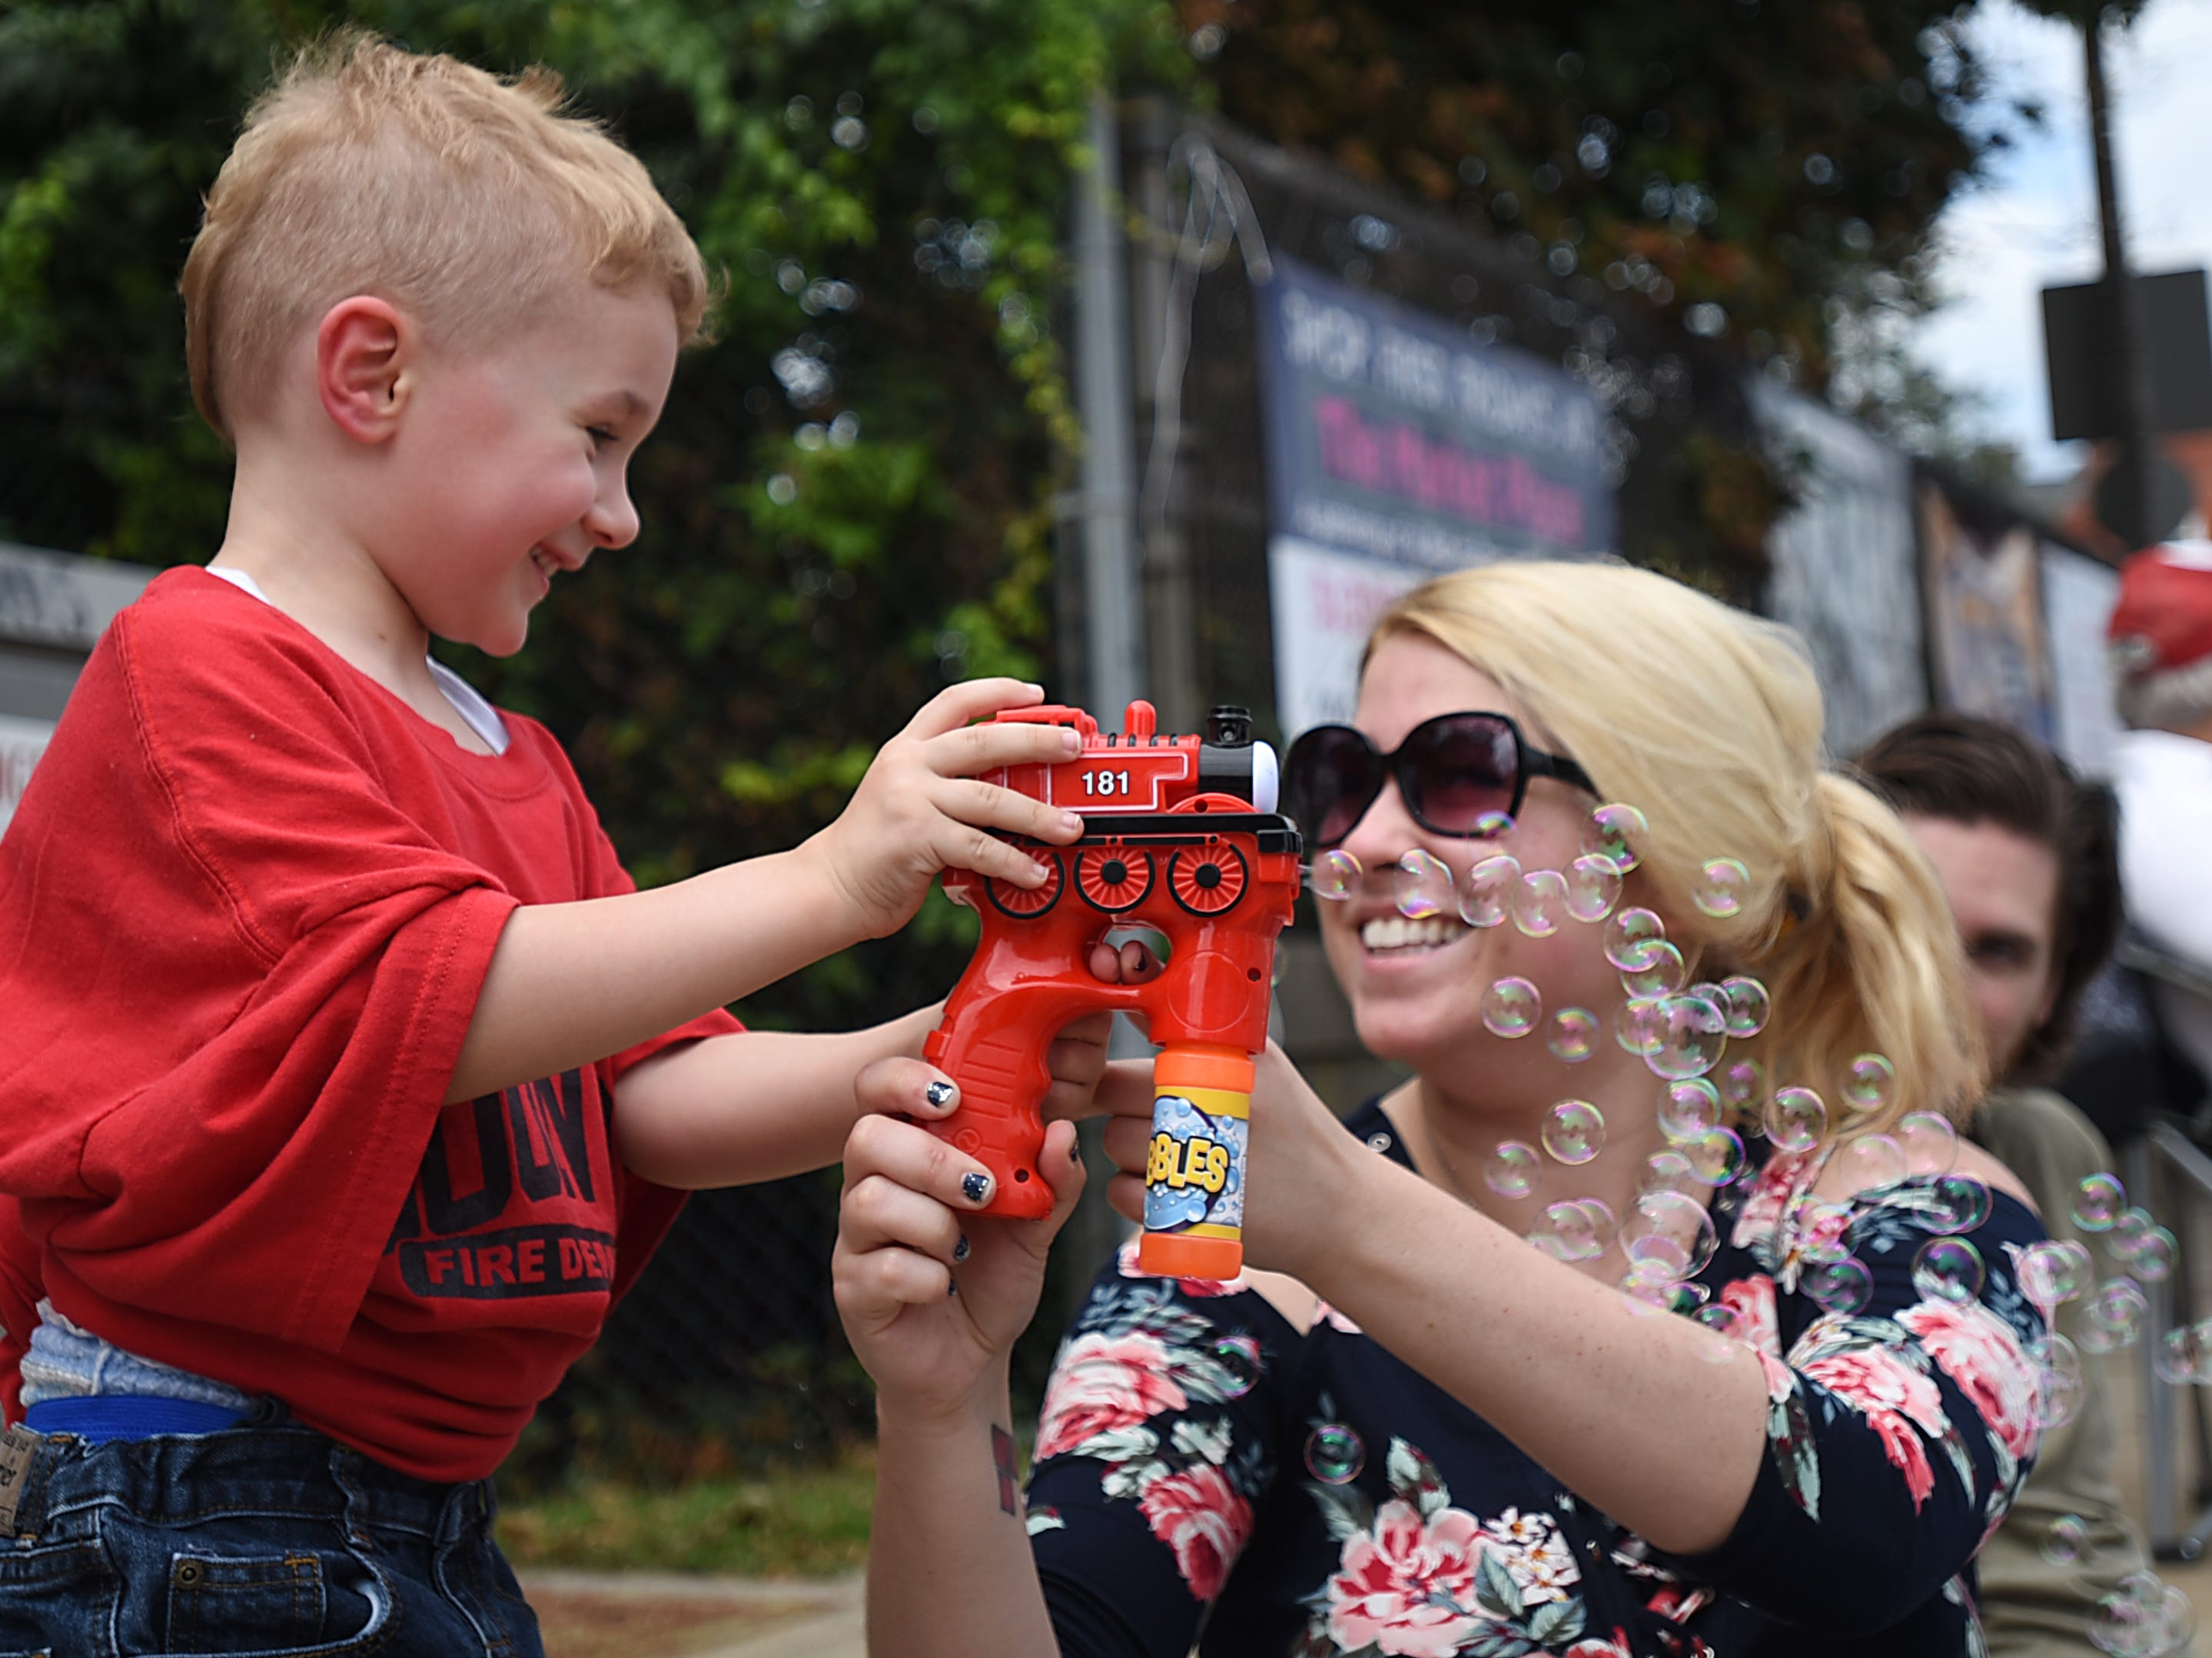 Charlie Sedlak three years old from Boonton, blows bubbles with Michelle Franchino from Parsippany during the Boonton parade in Boonton on Saturday September 1, 2018.